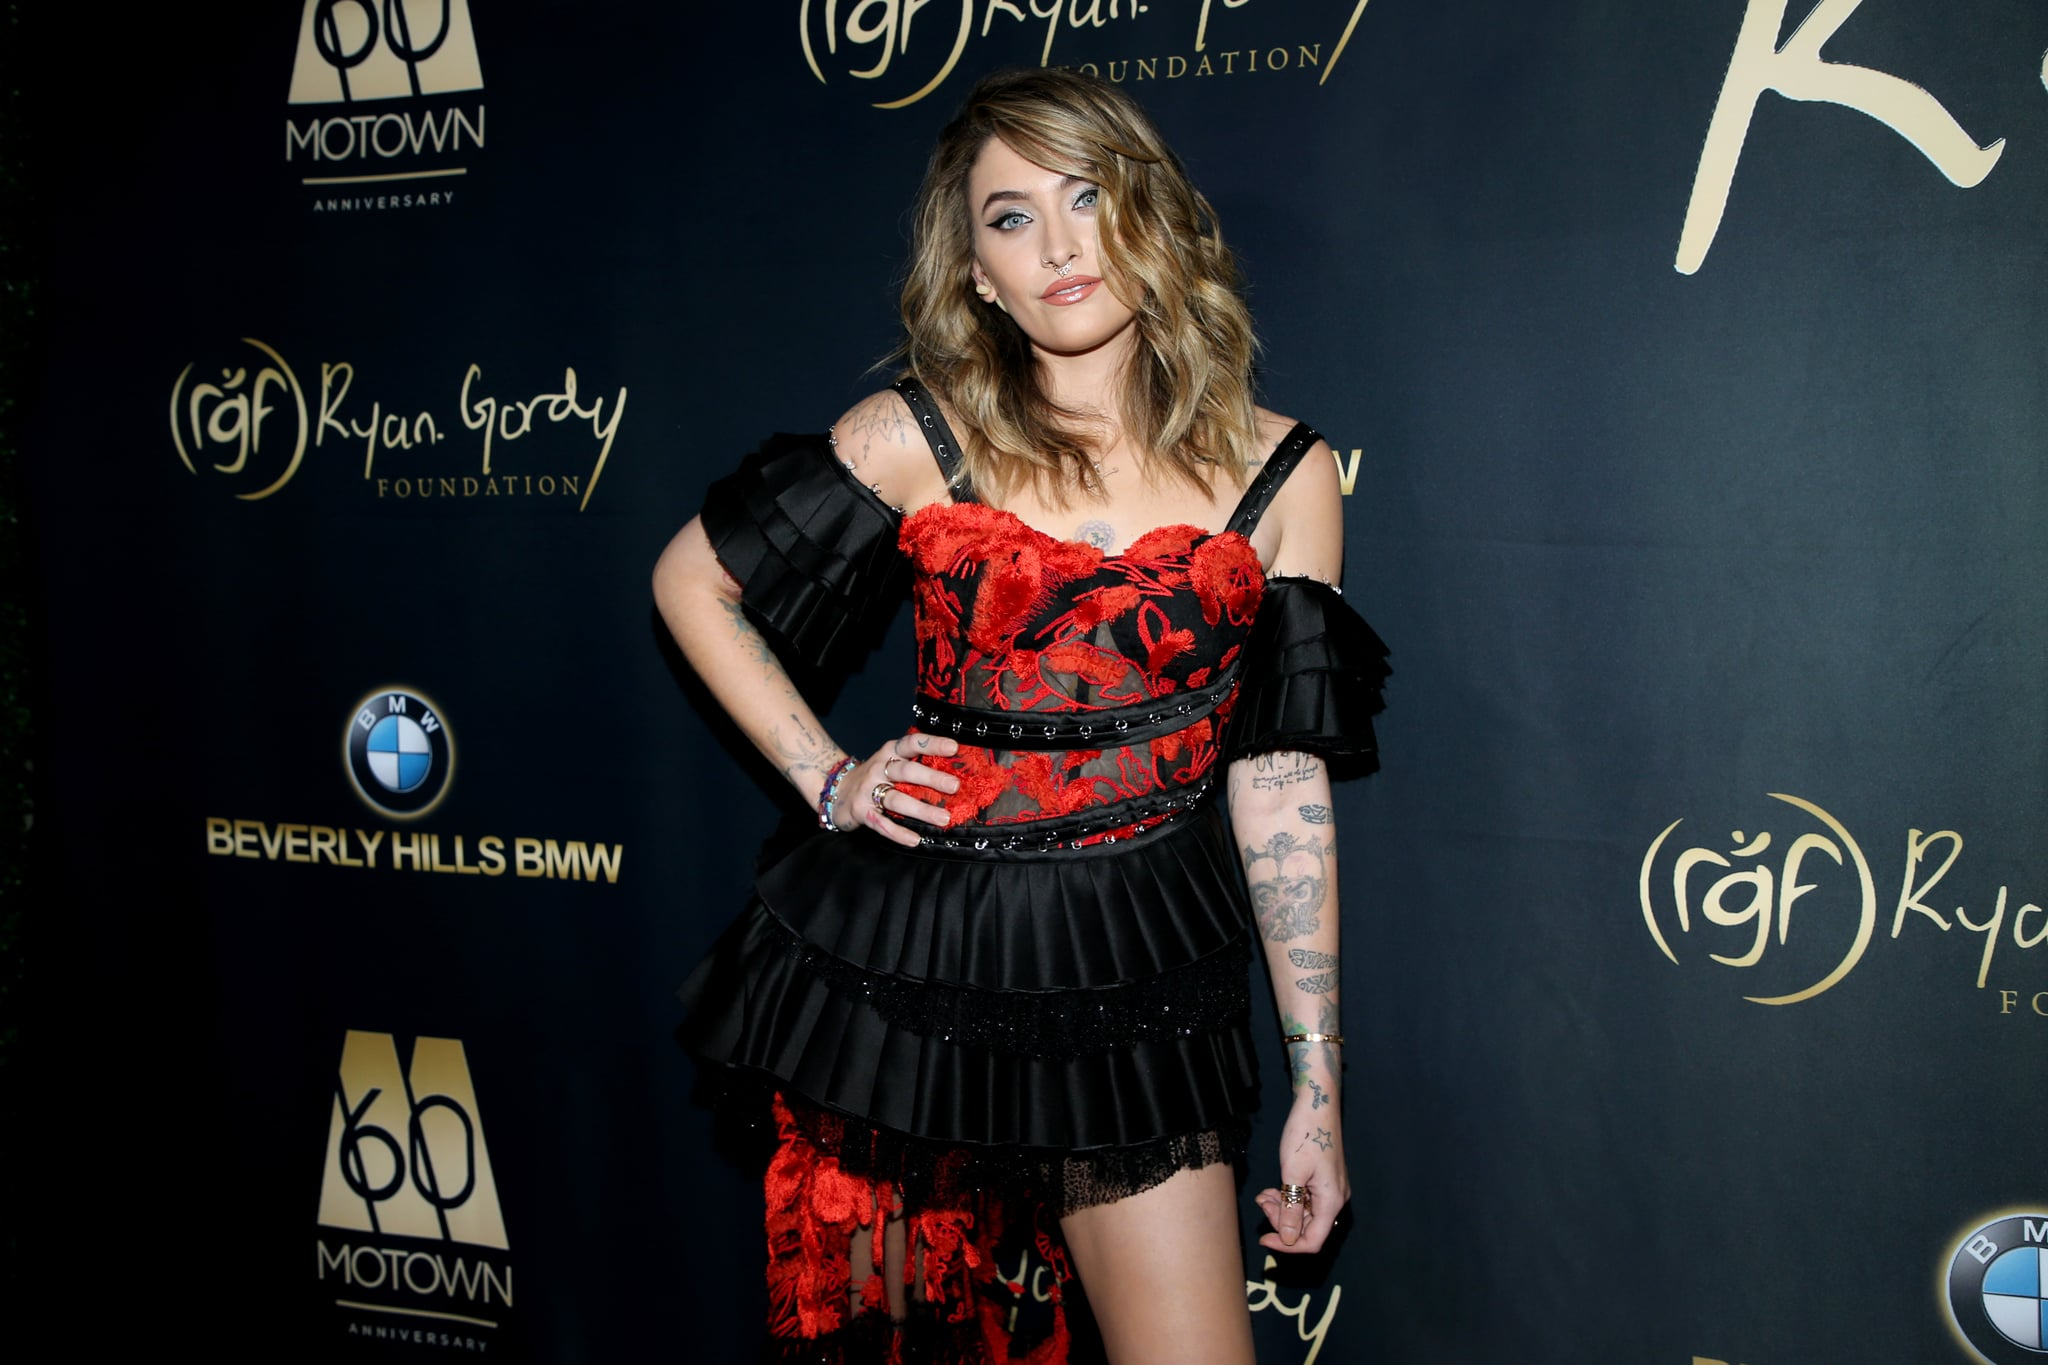 BEVERLY HILLS, CALIFORNIA - NOVEMBER 11:  Paris Jackson attends Ryan Gordy Foundation Celebrates 60 Years Of Mowtown at Waldorf Astoria Beverly Hills on November 11, 2019 in Beverly Hills, California. (Photo by Phillip Faraone/WireImage)